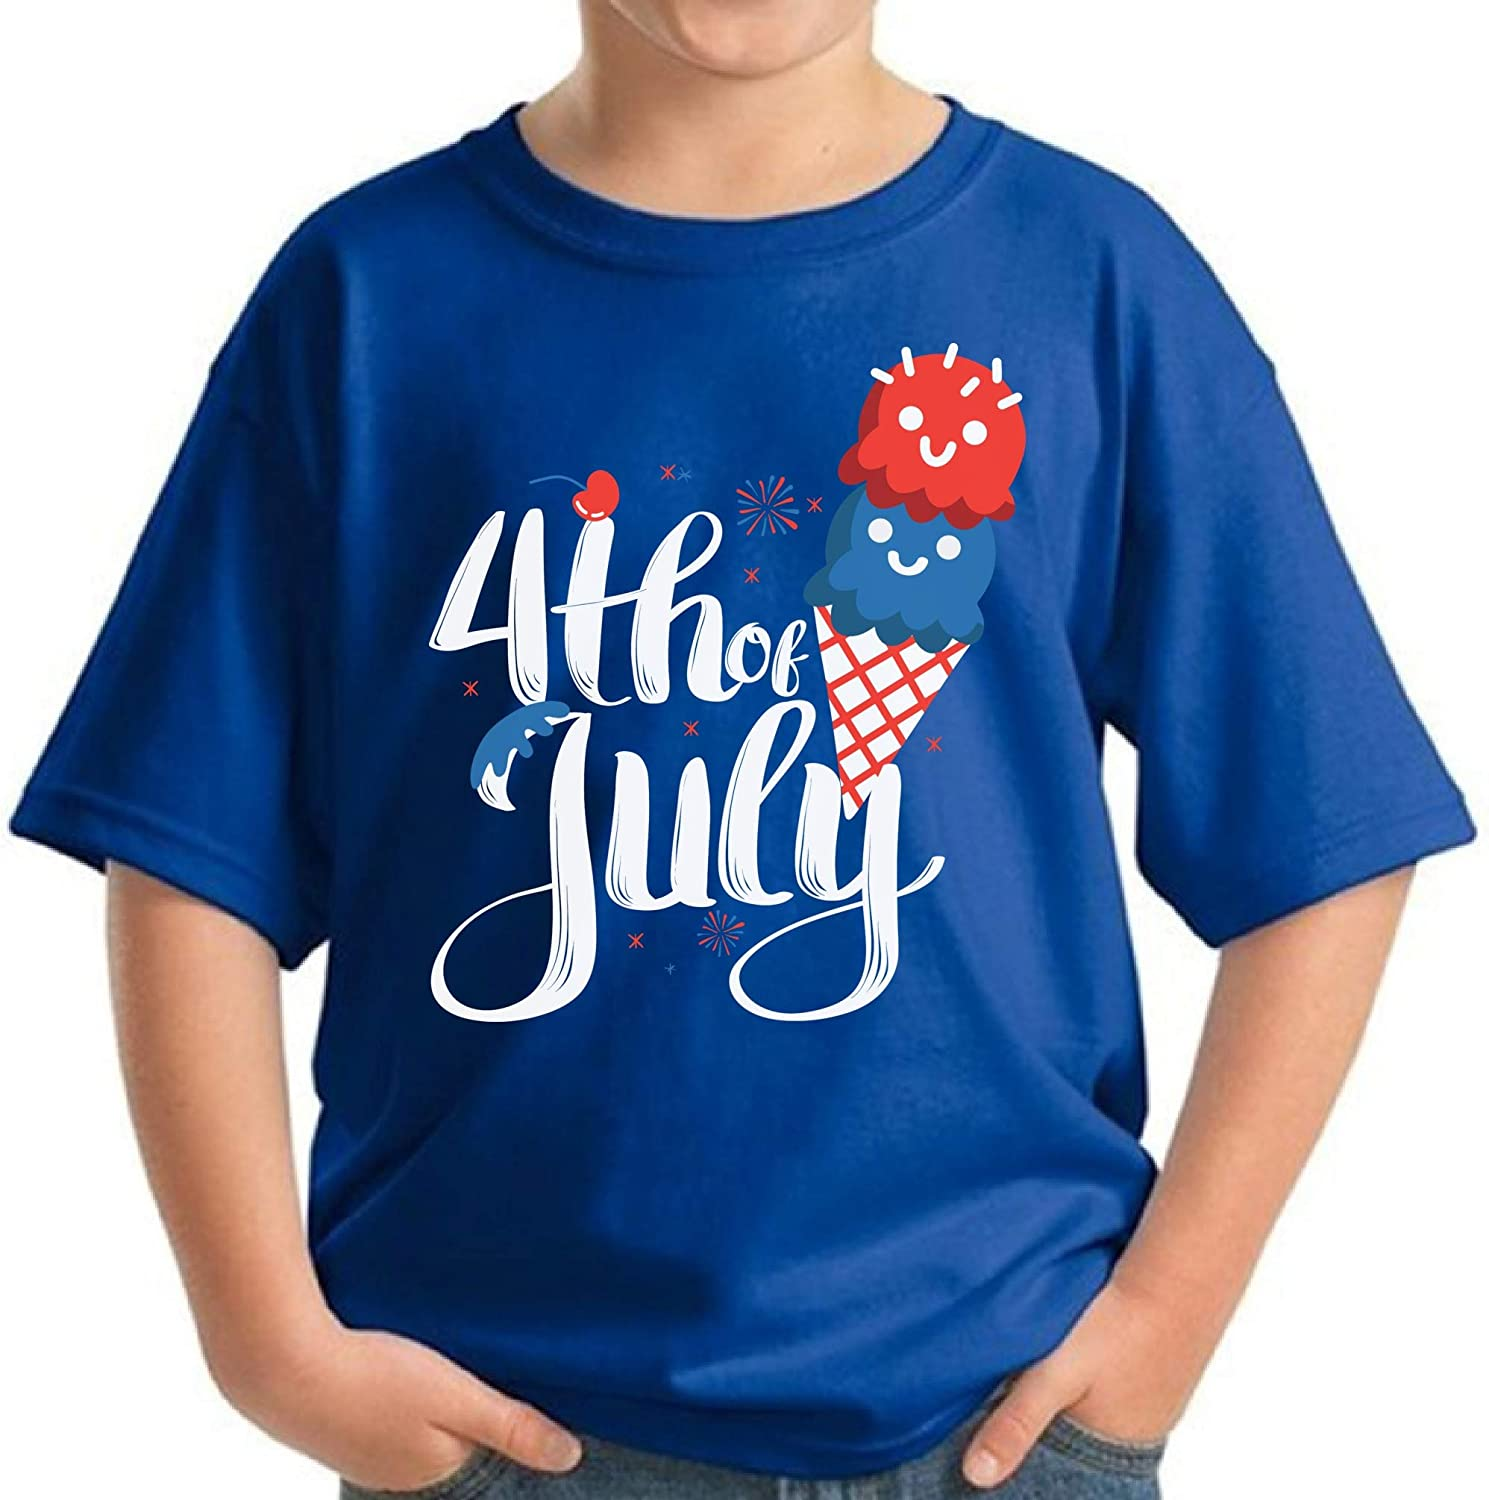 Awkward Styles Youth T Shirt 4th of July Clothes Ice Cream Lovers Fourth of July Shirt